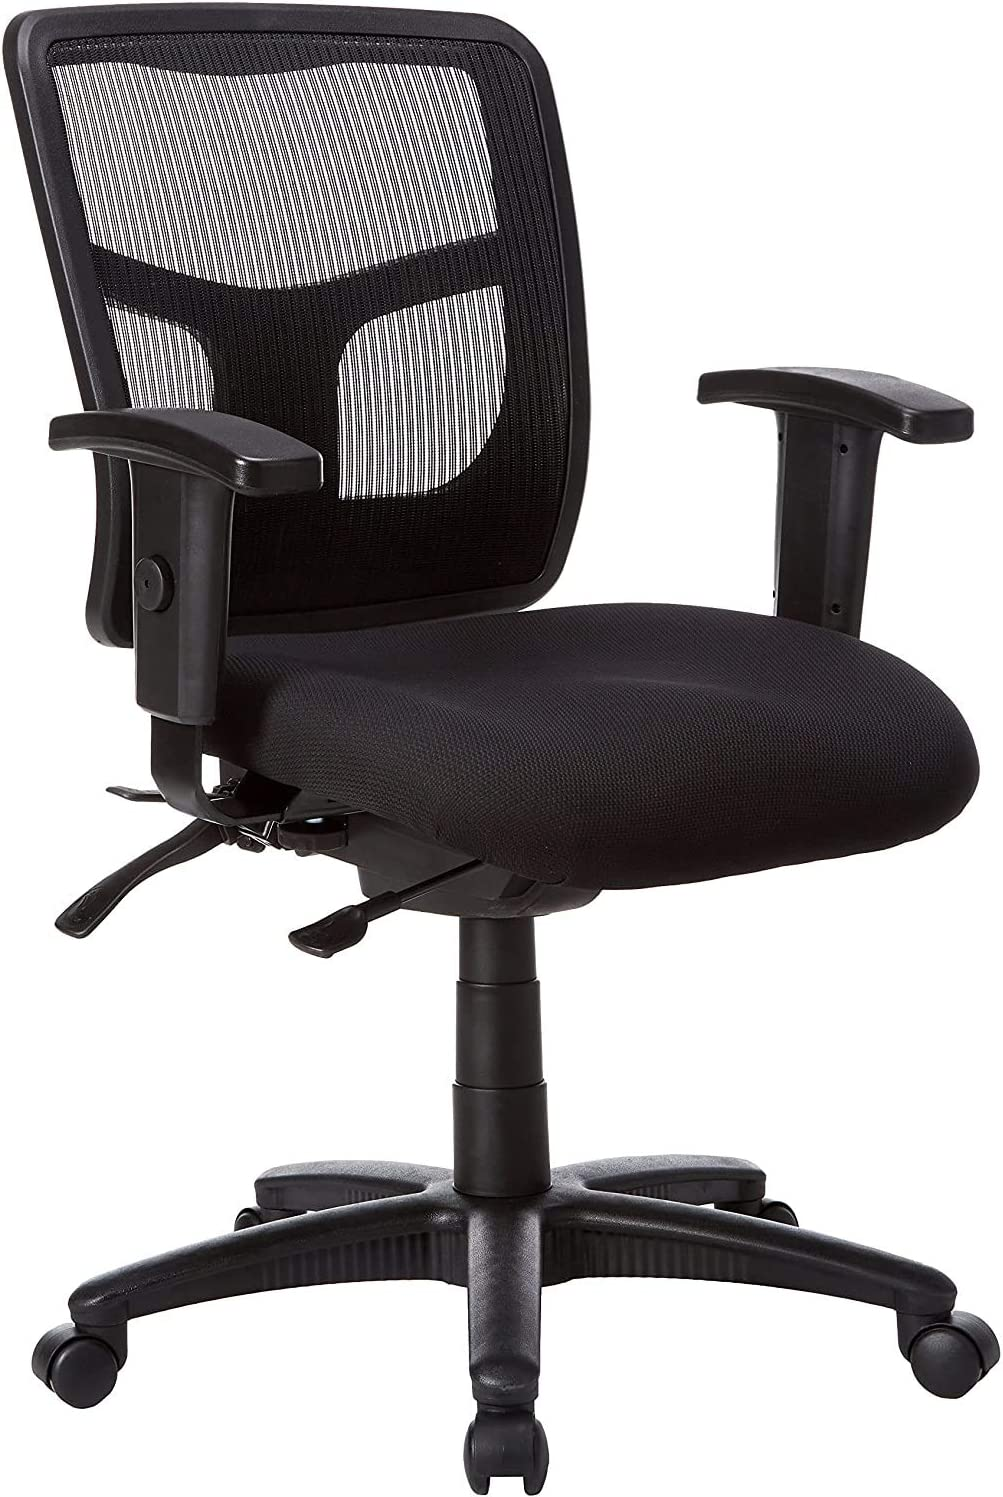 Lorell 86201 Ergomesh Chair, Mesh Back/Black Fabric Seat Limited Edition